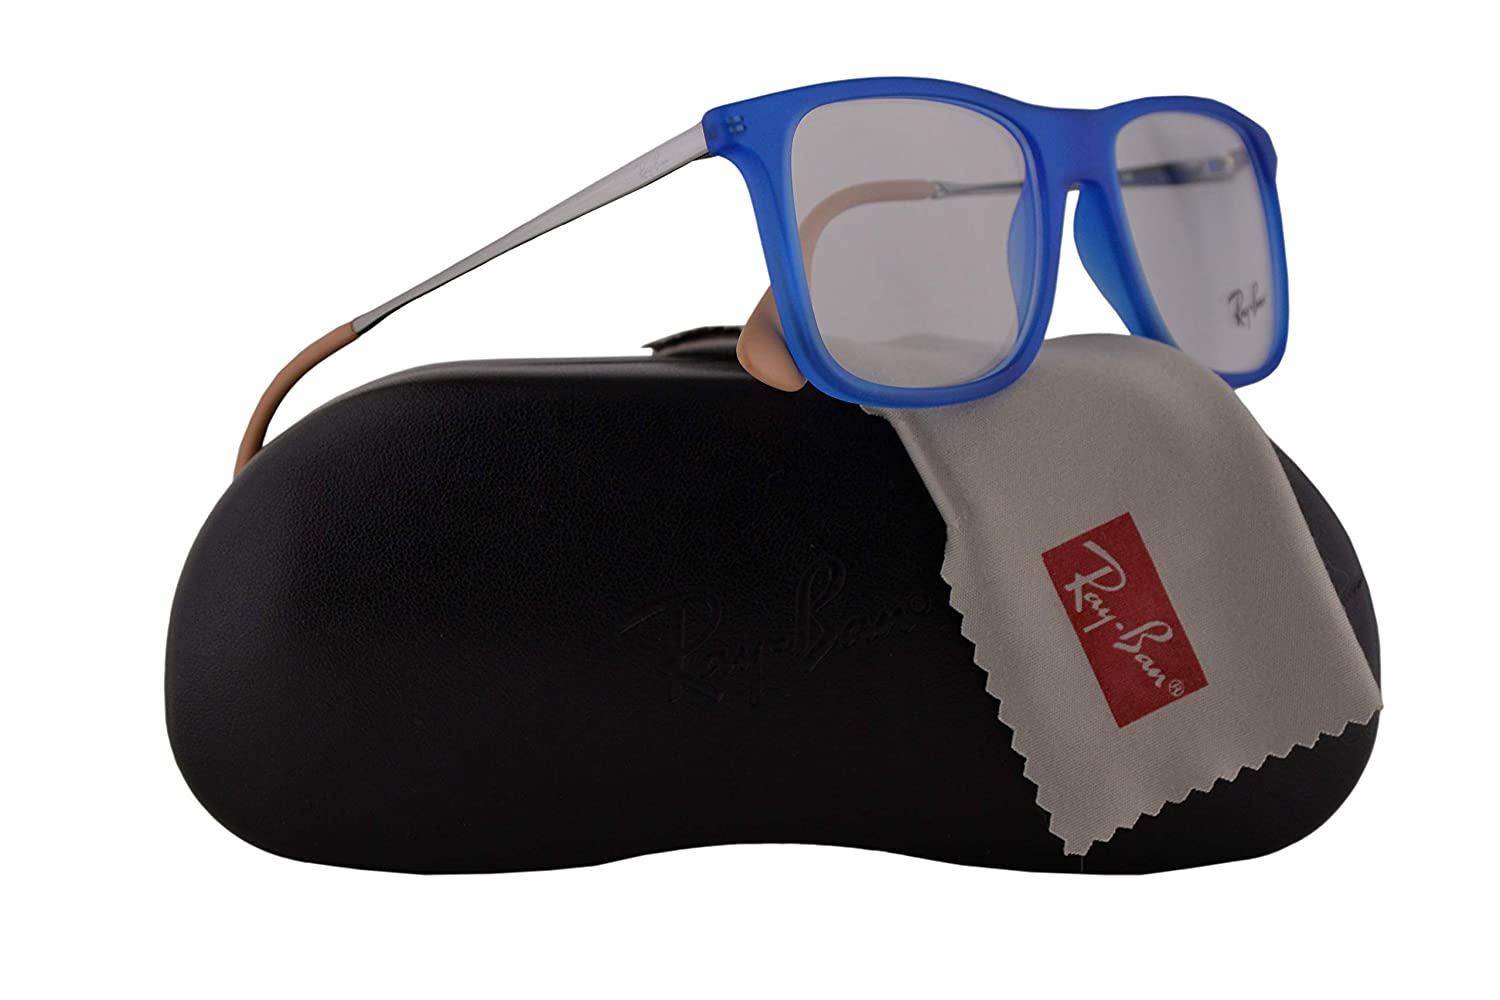 Ray Ban RX7054 Eyeglasses 51-17-140 Rubber Blue w/Demo Clear Lens 5524 RX 7054 RB 7054 RB7054